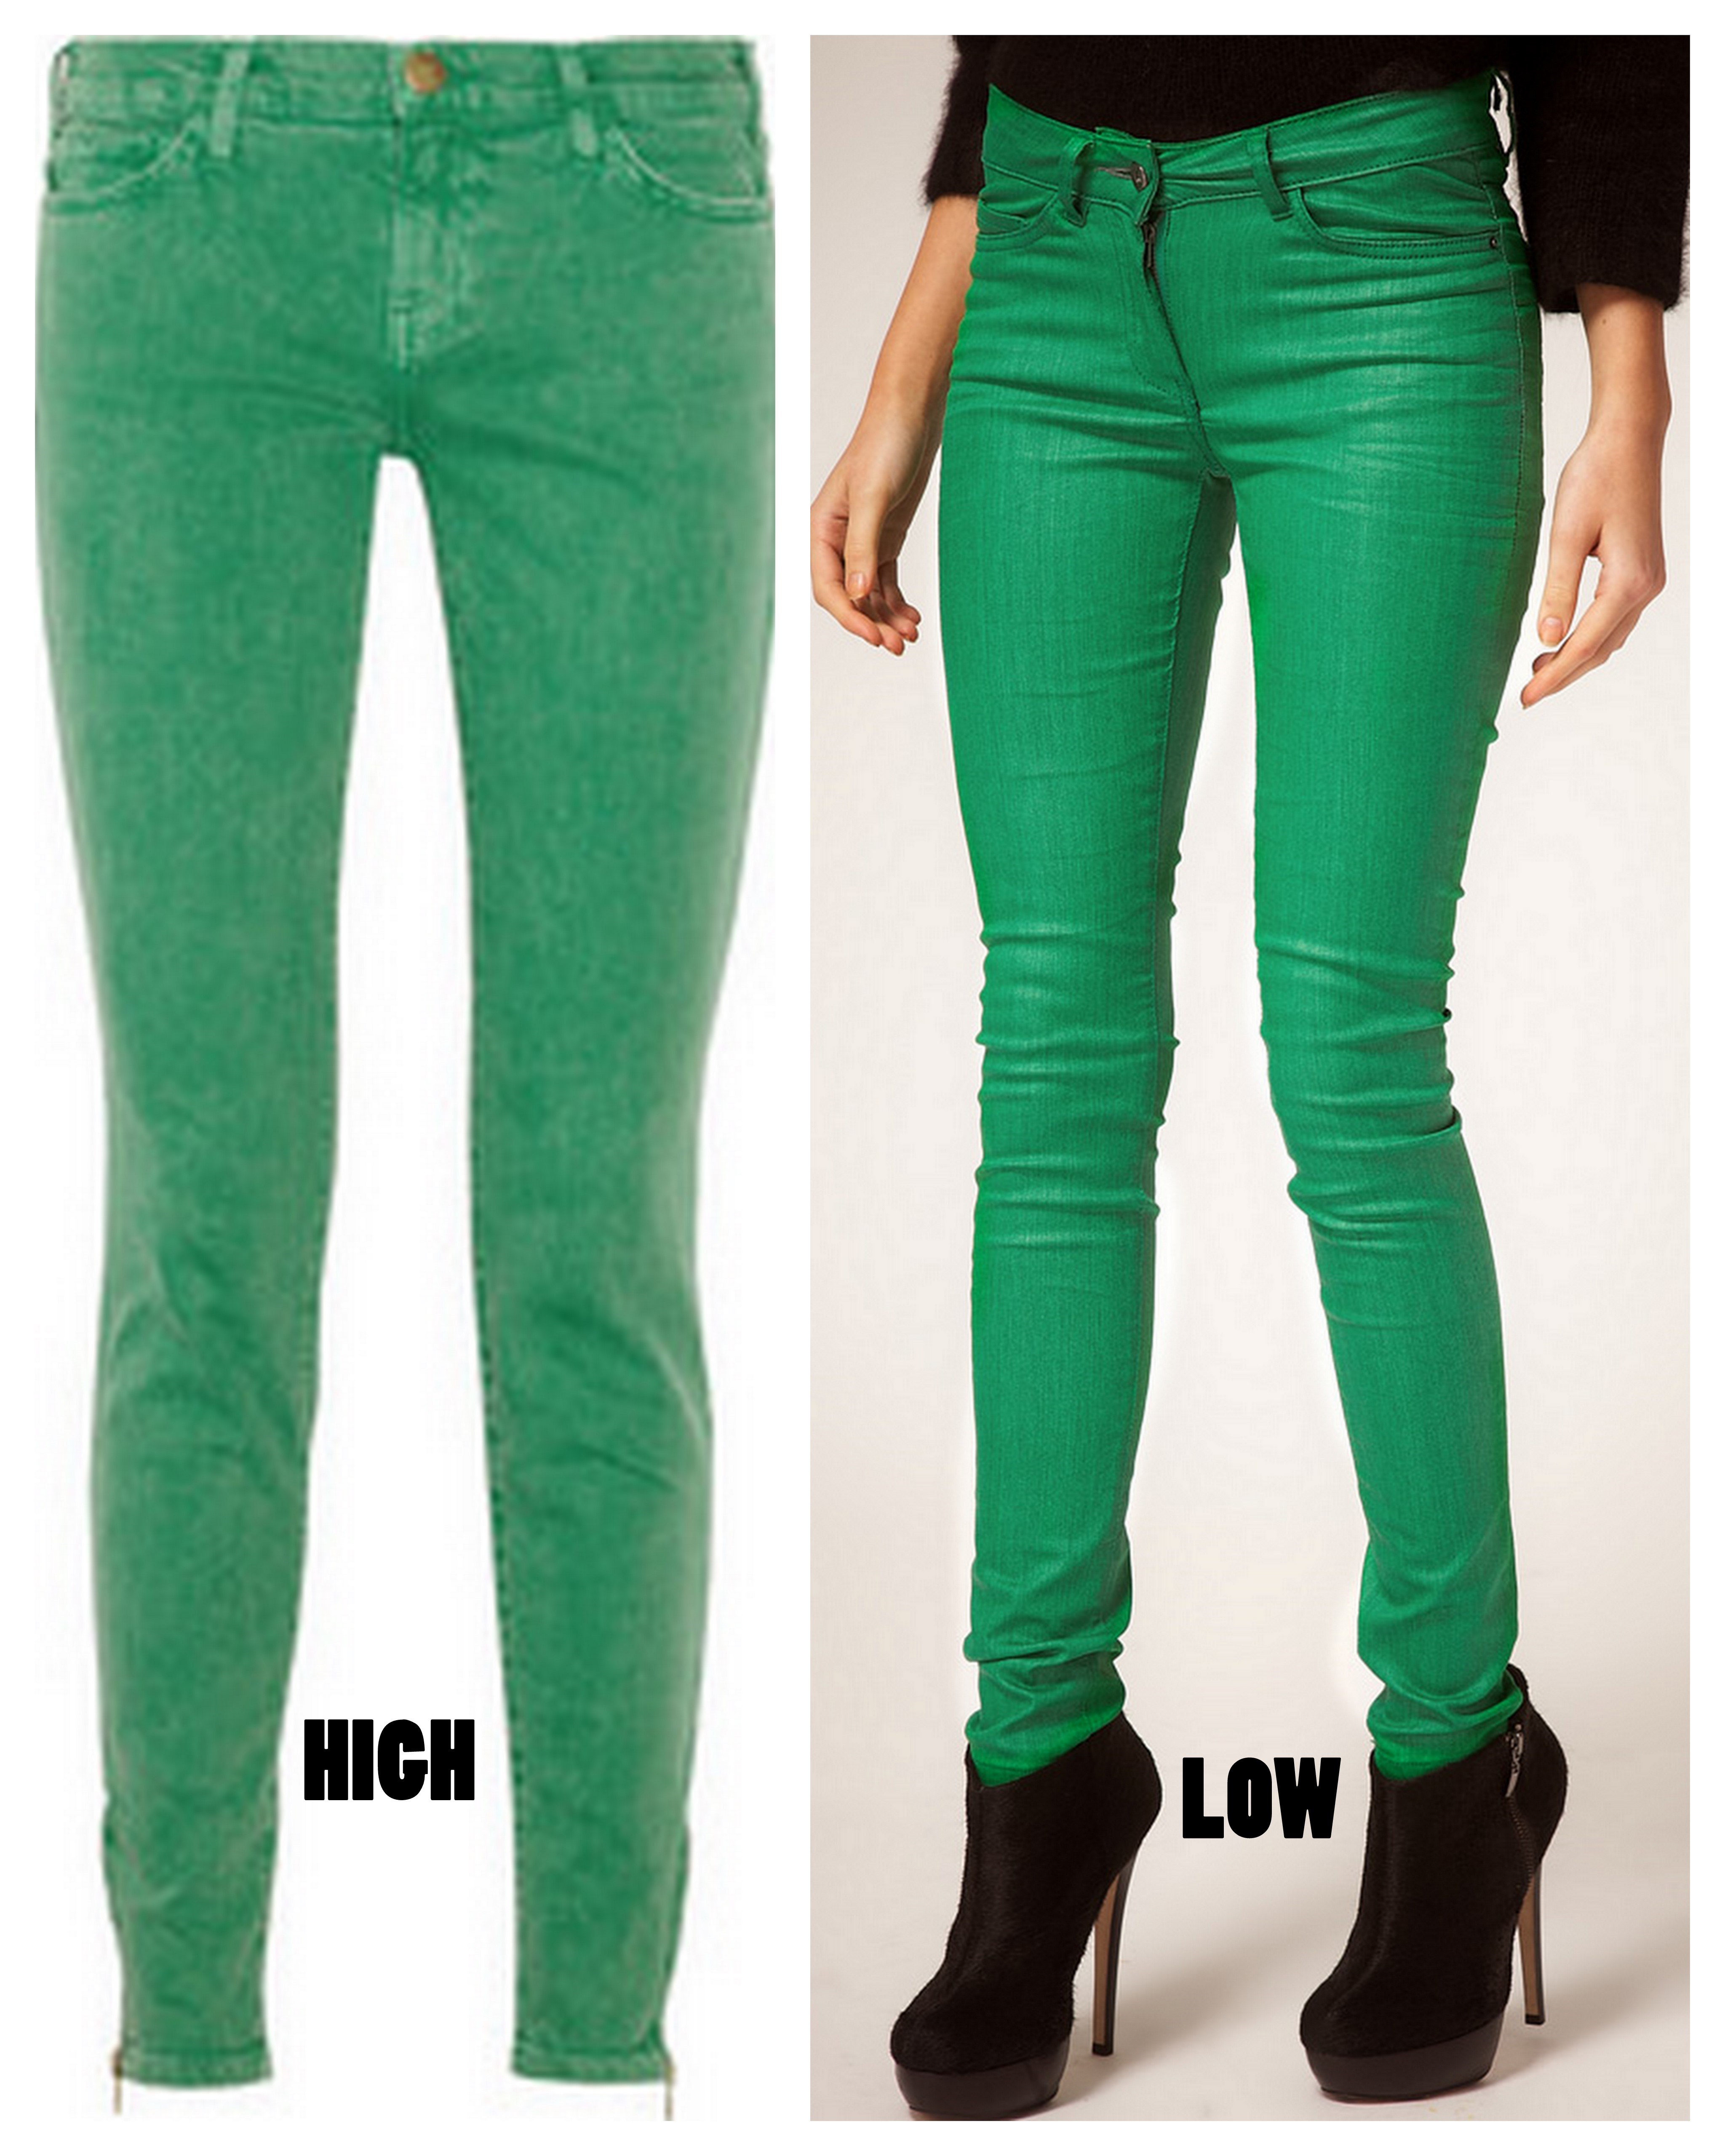 High & Low: Colored Skinnies | ALL THINGS MAJOR